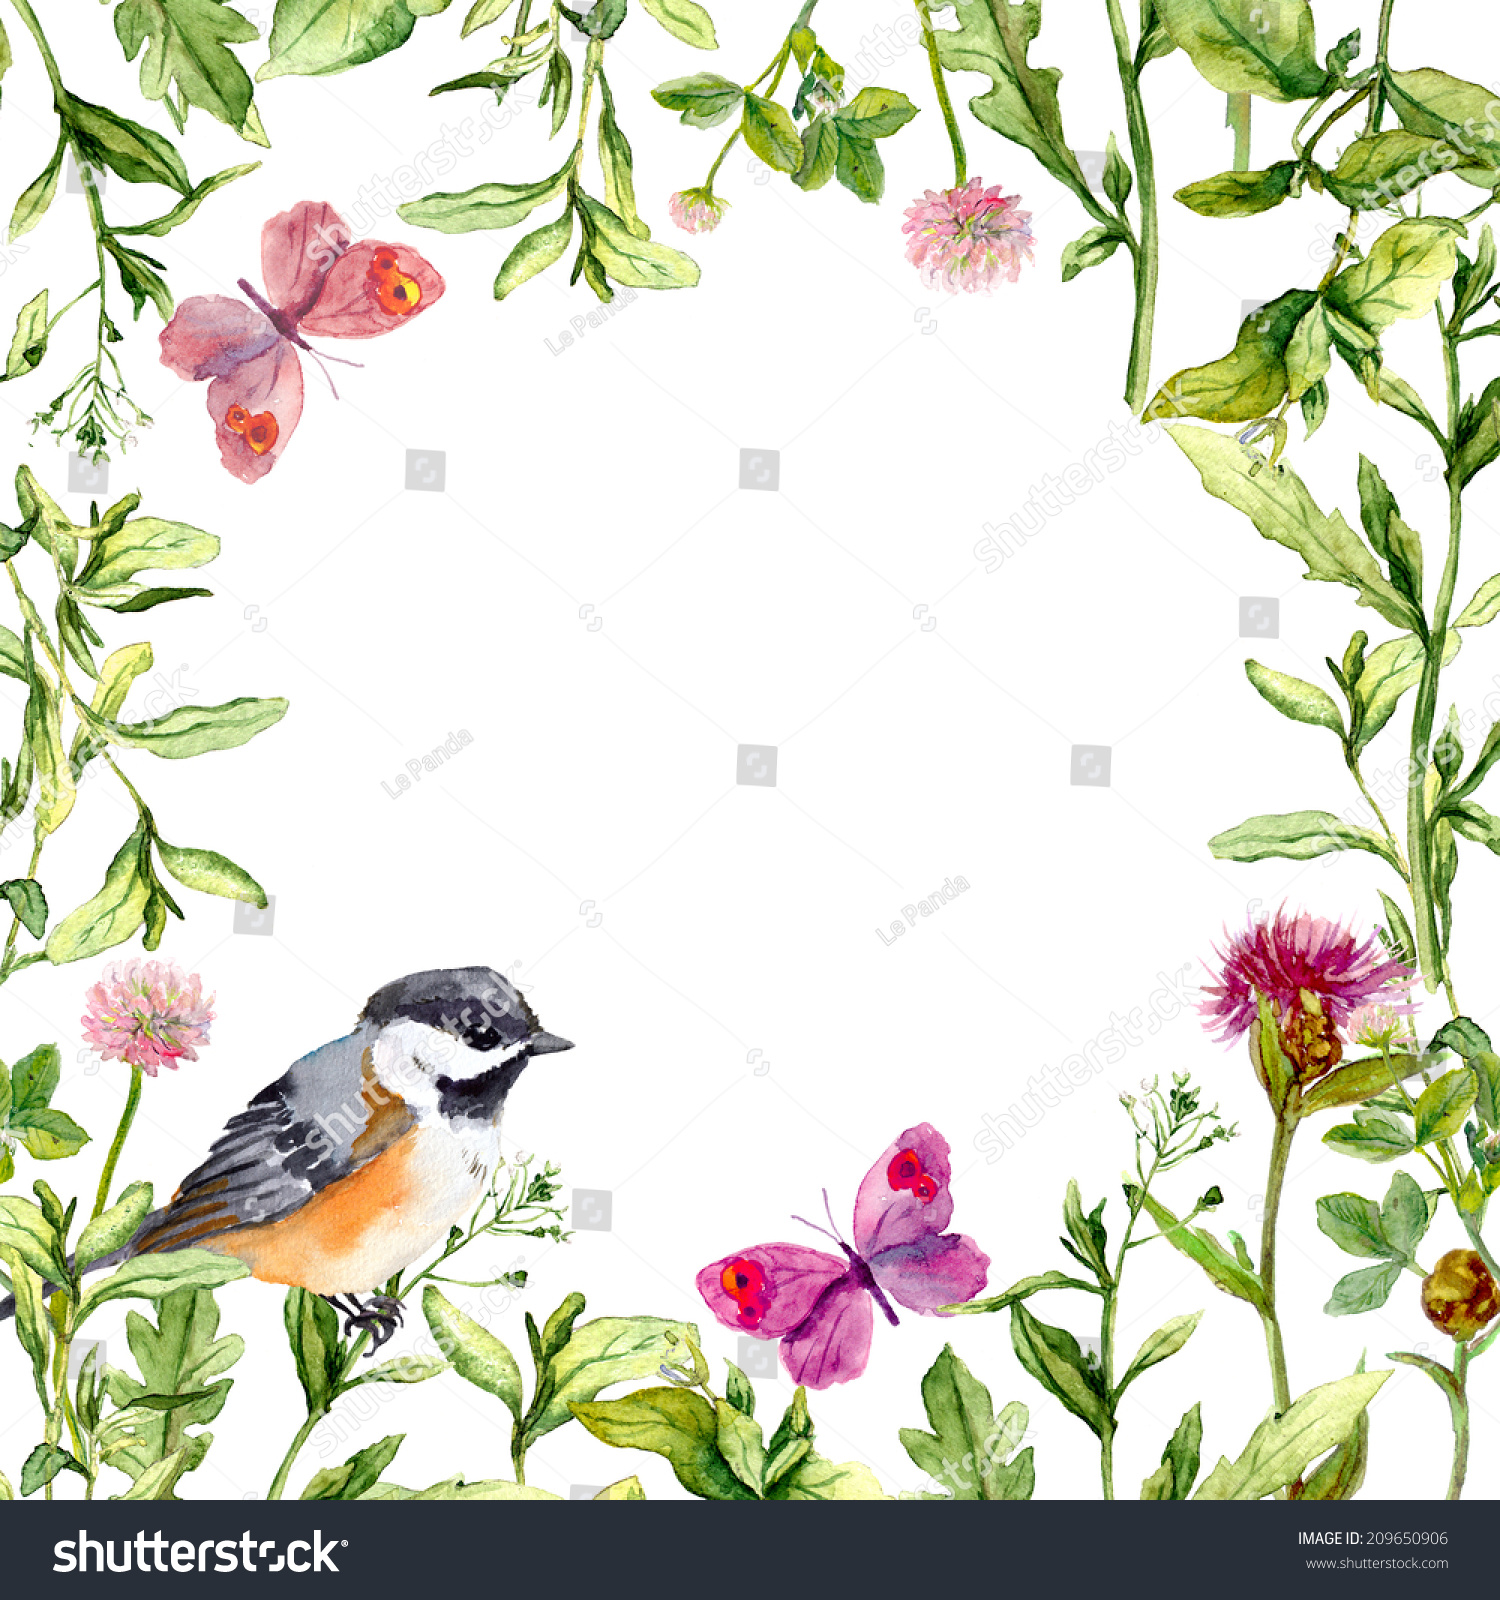 Beautiful Pictures Of Flowers And Butterflies Birds Border Frame With Summer Herbs Meadow Flowers Bird And